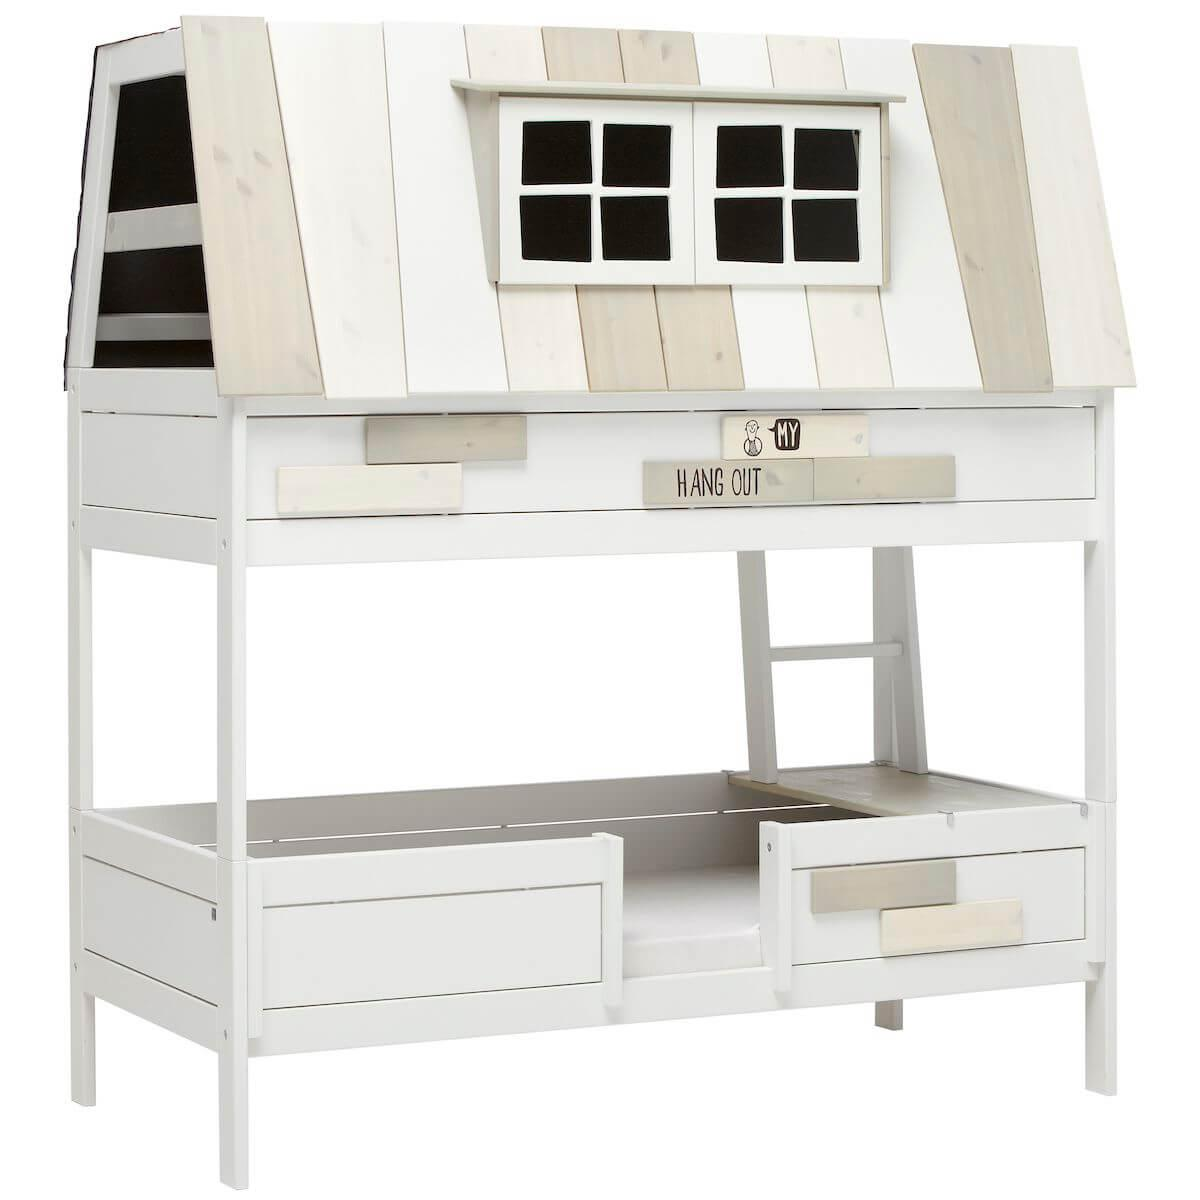 Hang Out by Life Time Lit Cabane blanc laqué sommier luxe